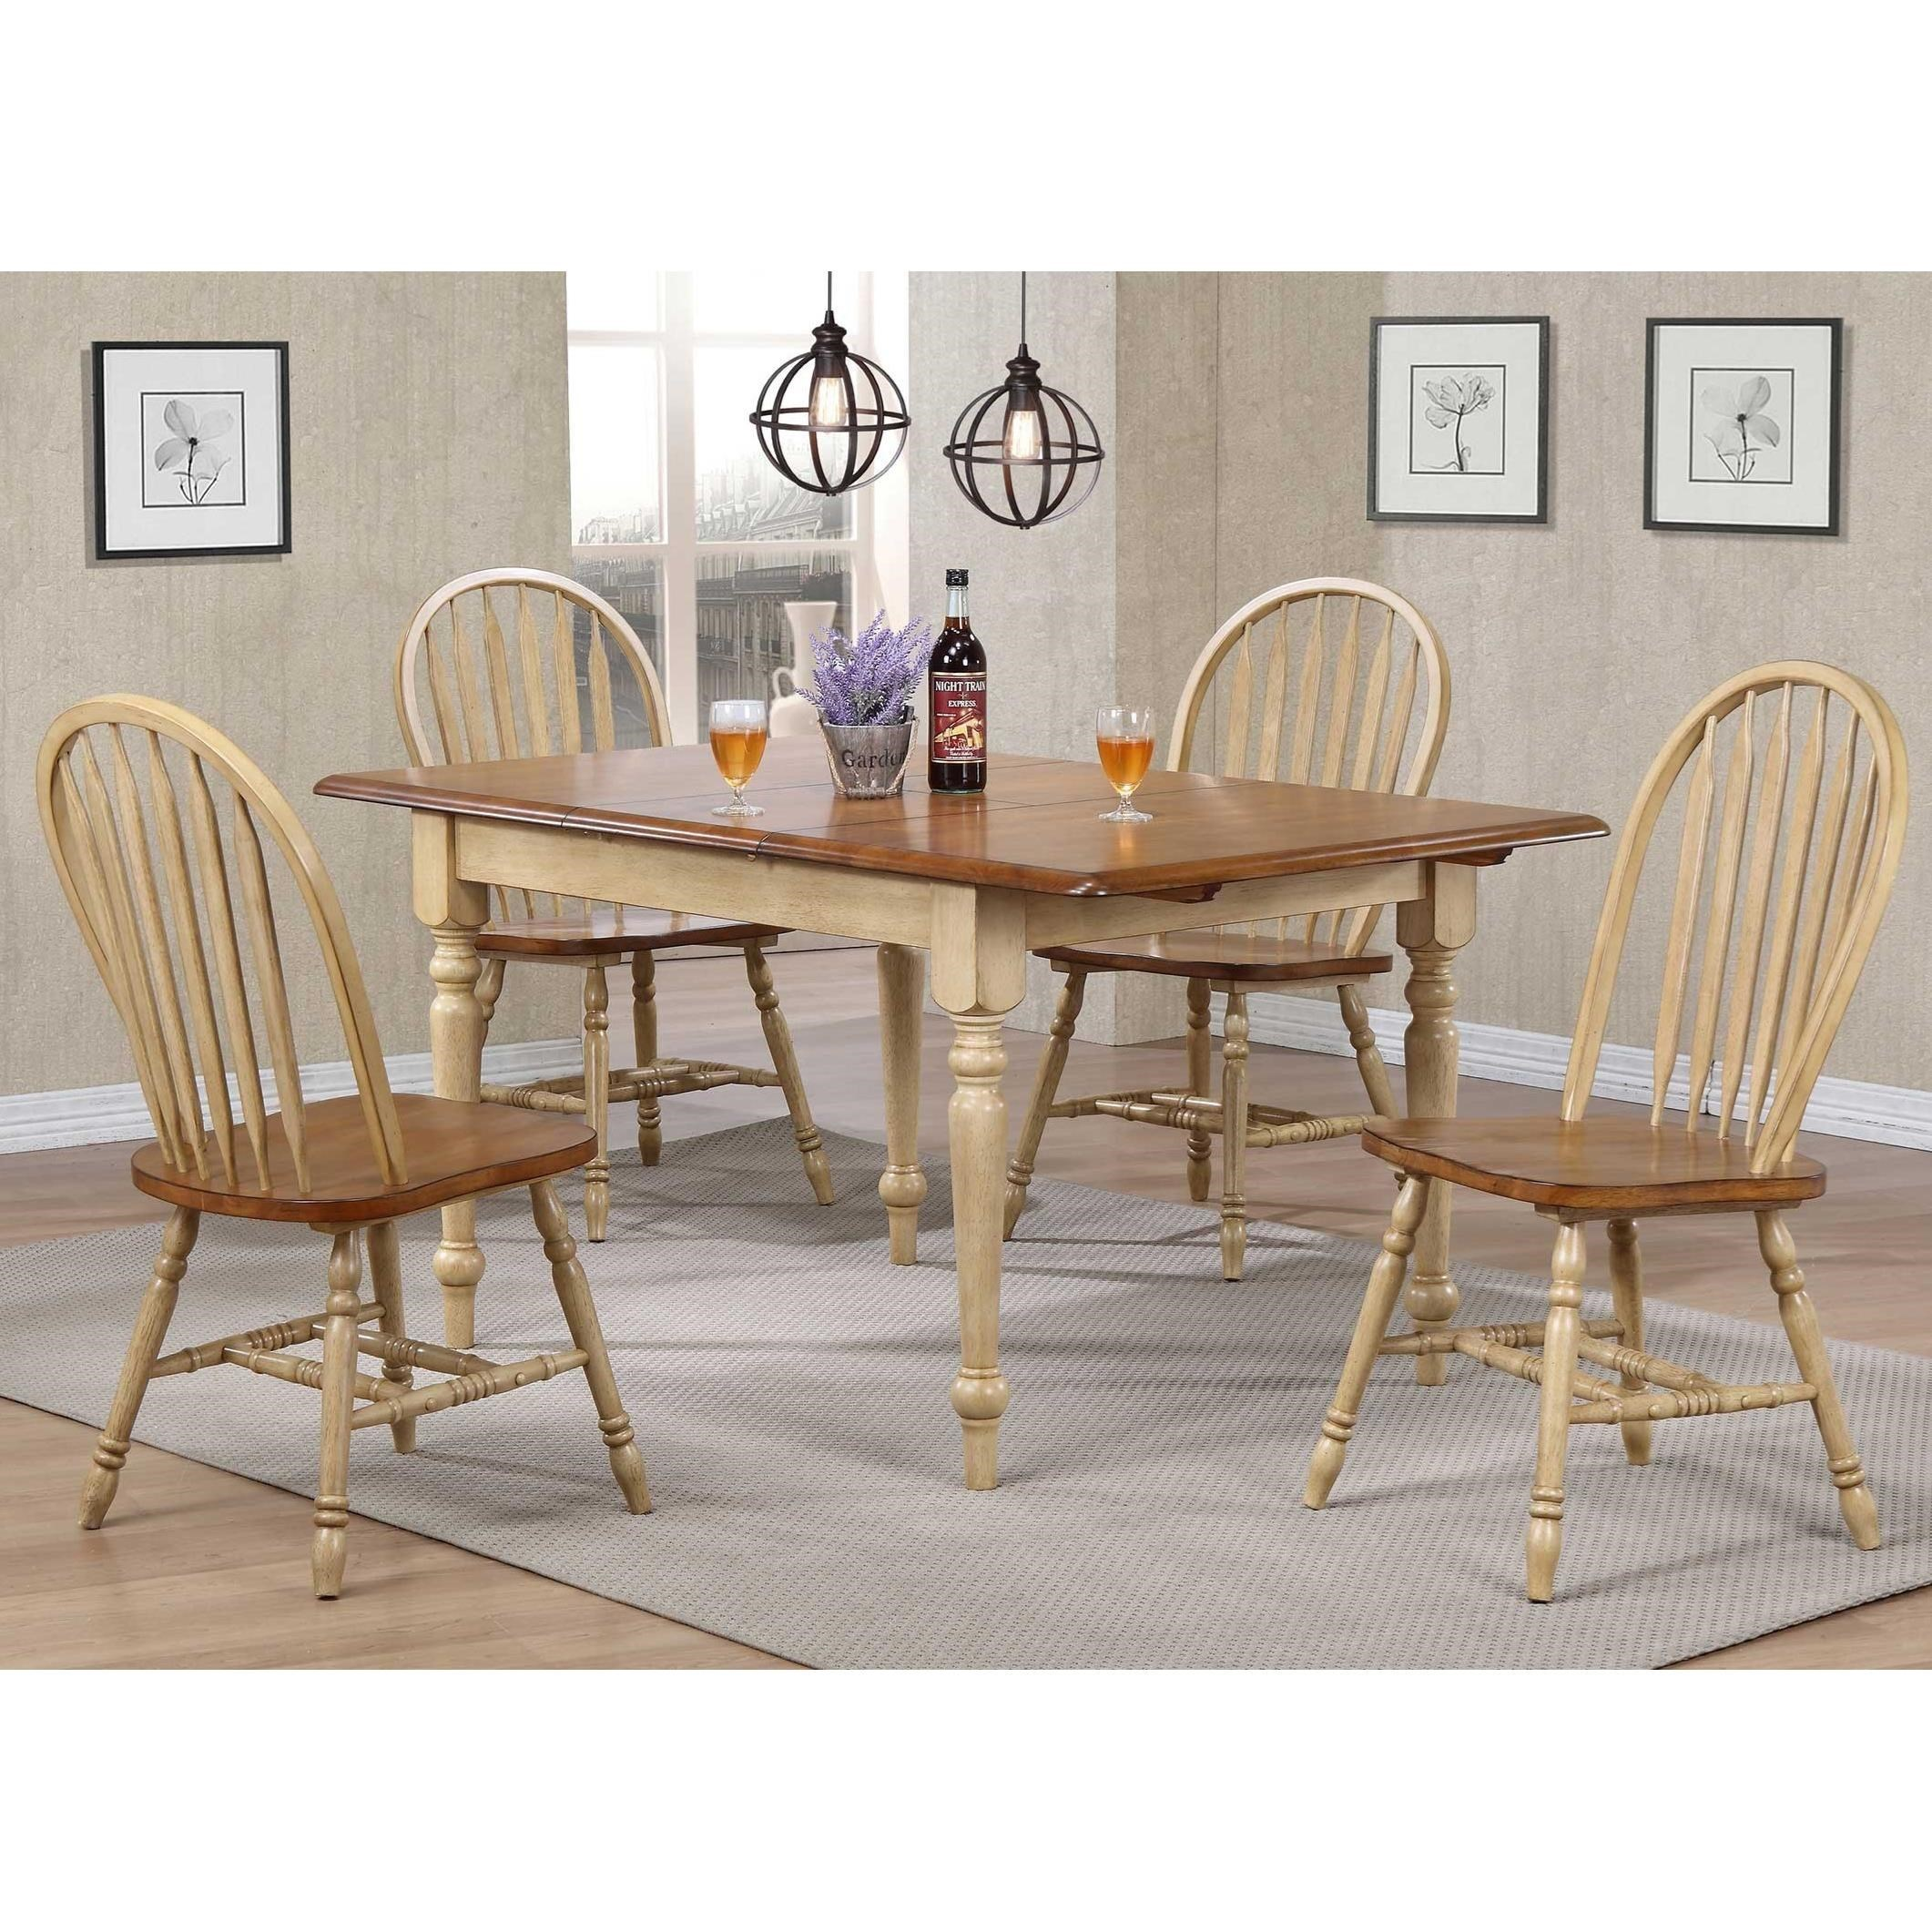 Wonderful Farmington 5 Piece Country Dining Set By Winners Only